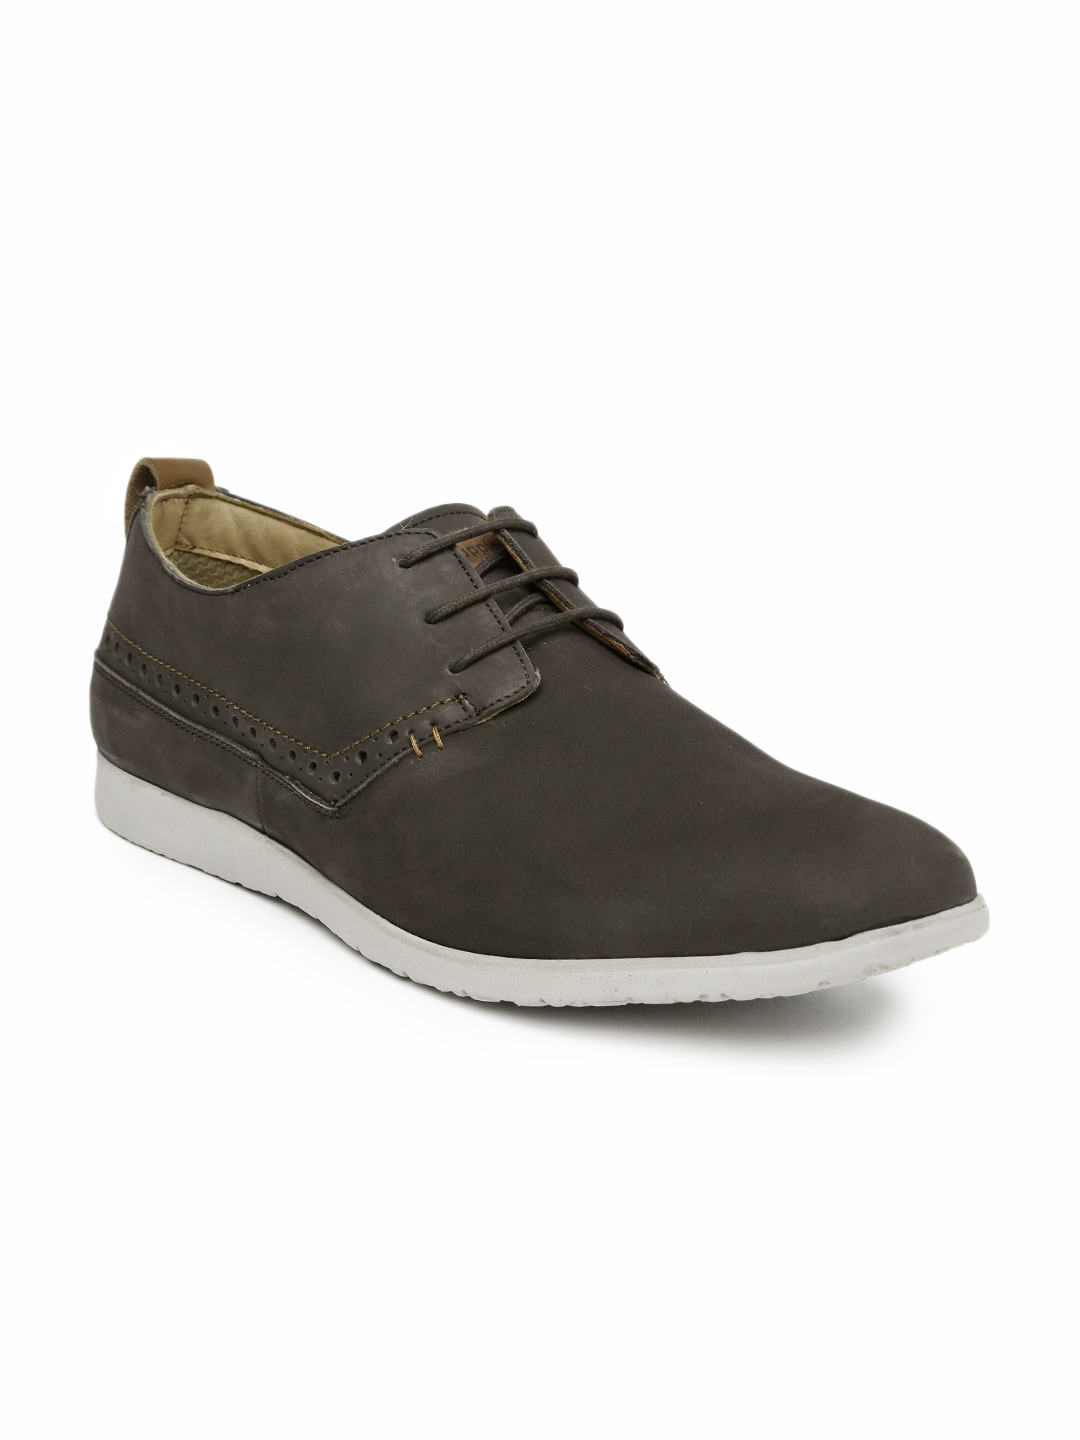 d63be31ea Hush Puppies Casual Shoes - Buy Hush Puppies Casual Shoes Online in India